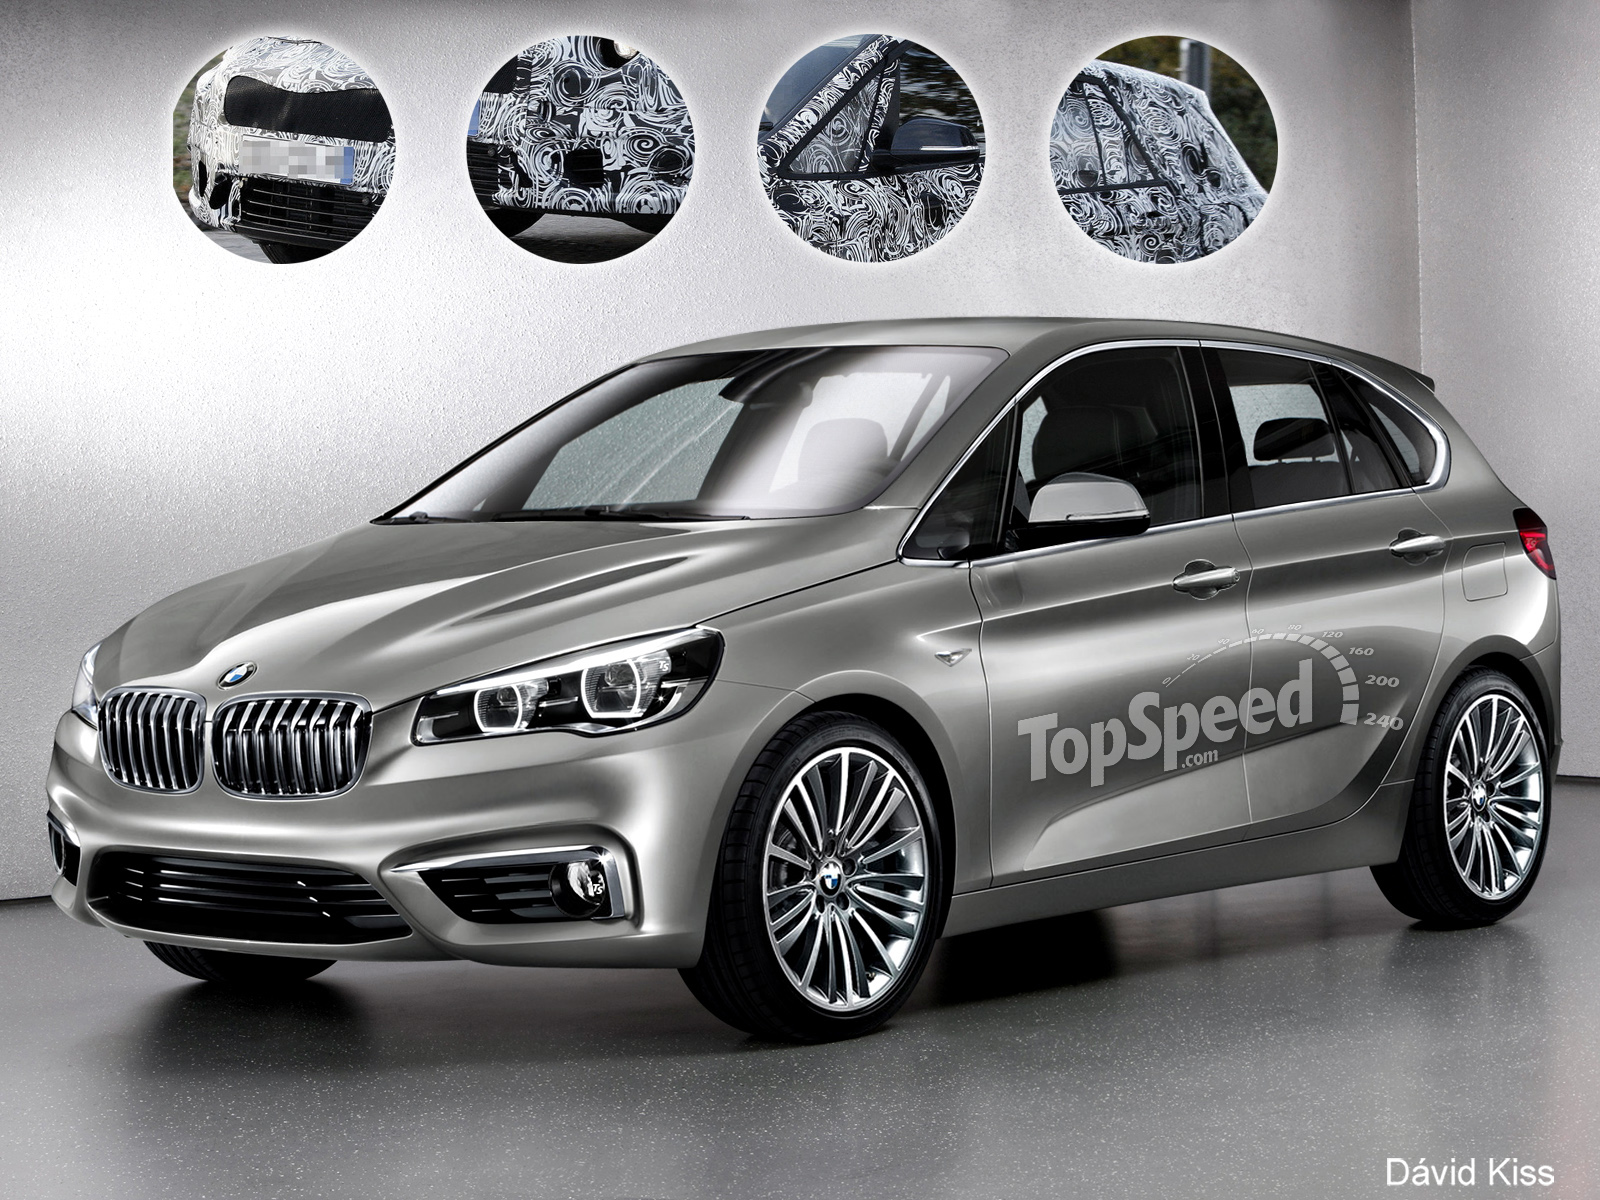 2014 bmw 1 series gran turismo review gallery top speed. Black Bedroom Furniture Sets. Home Design Ideas